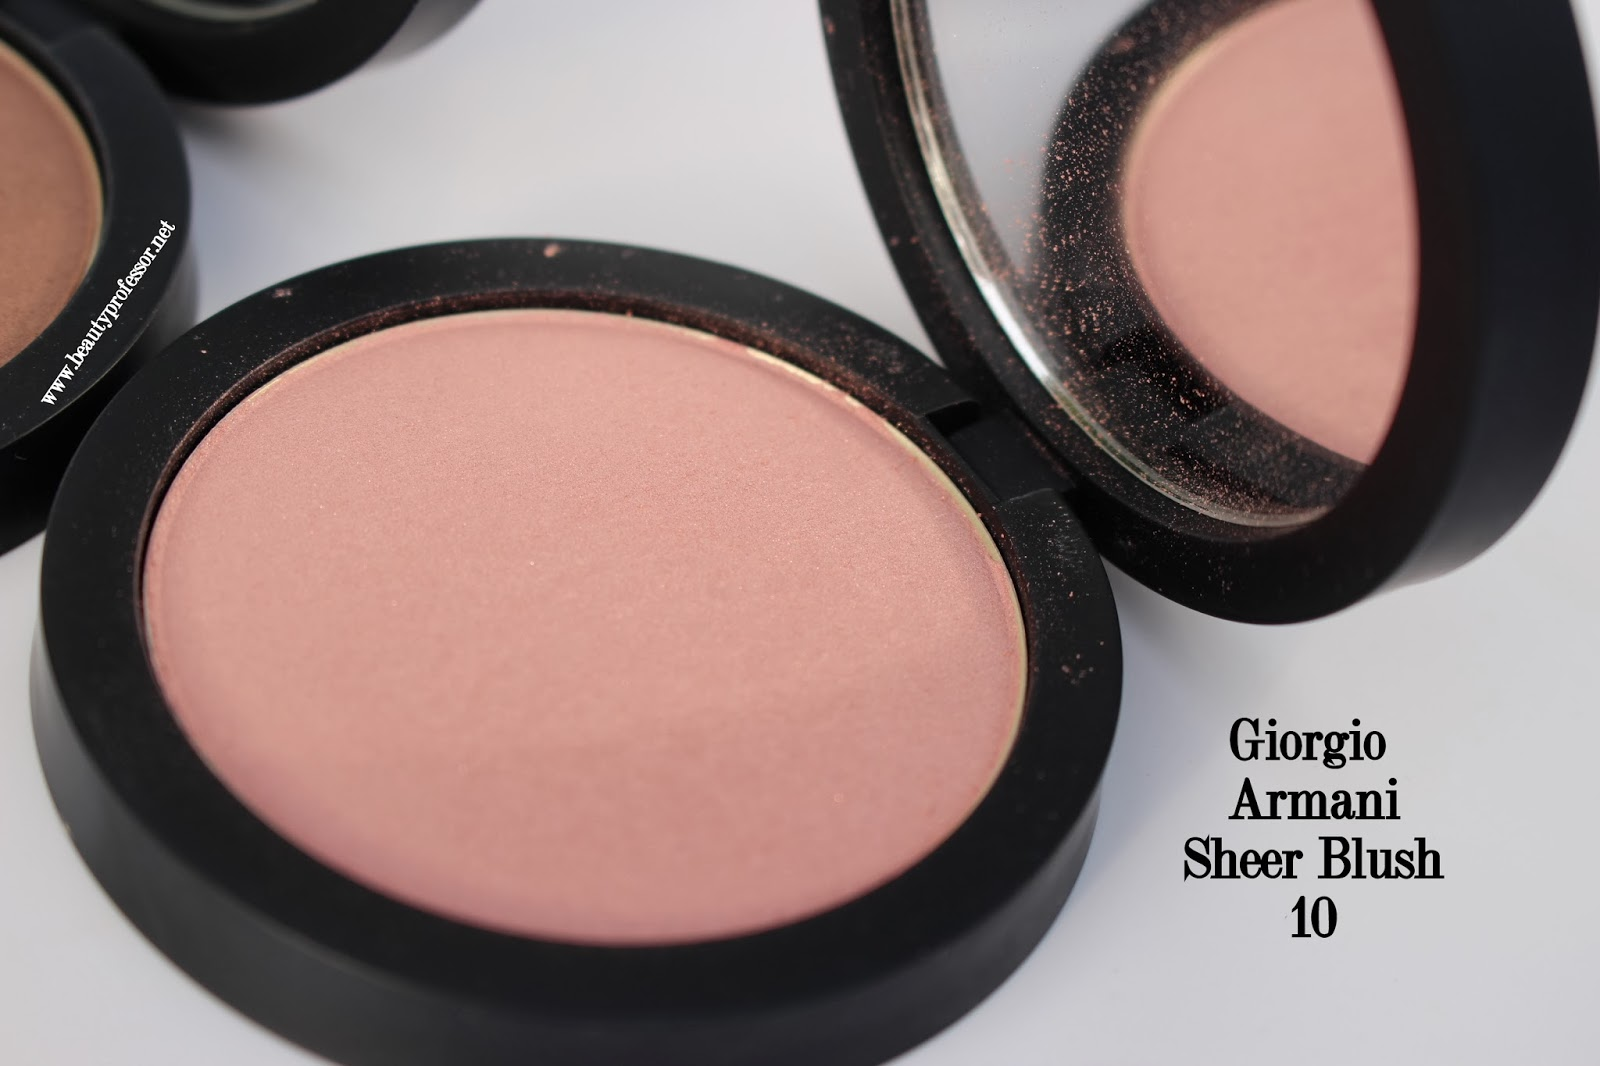 One of the most mysterious qualities of the Giorgio Armani Sheer Blush 10  is its ability to go from appearing like a conventional pale pink in the  pan to ... 2ed0e4293789